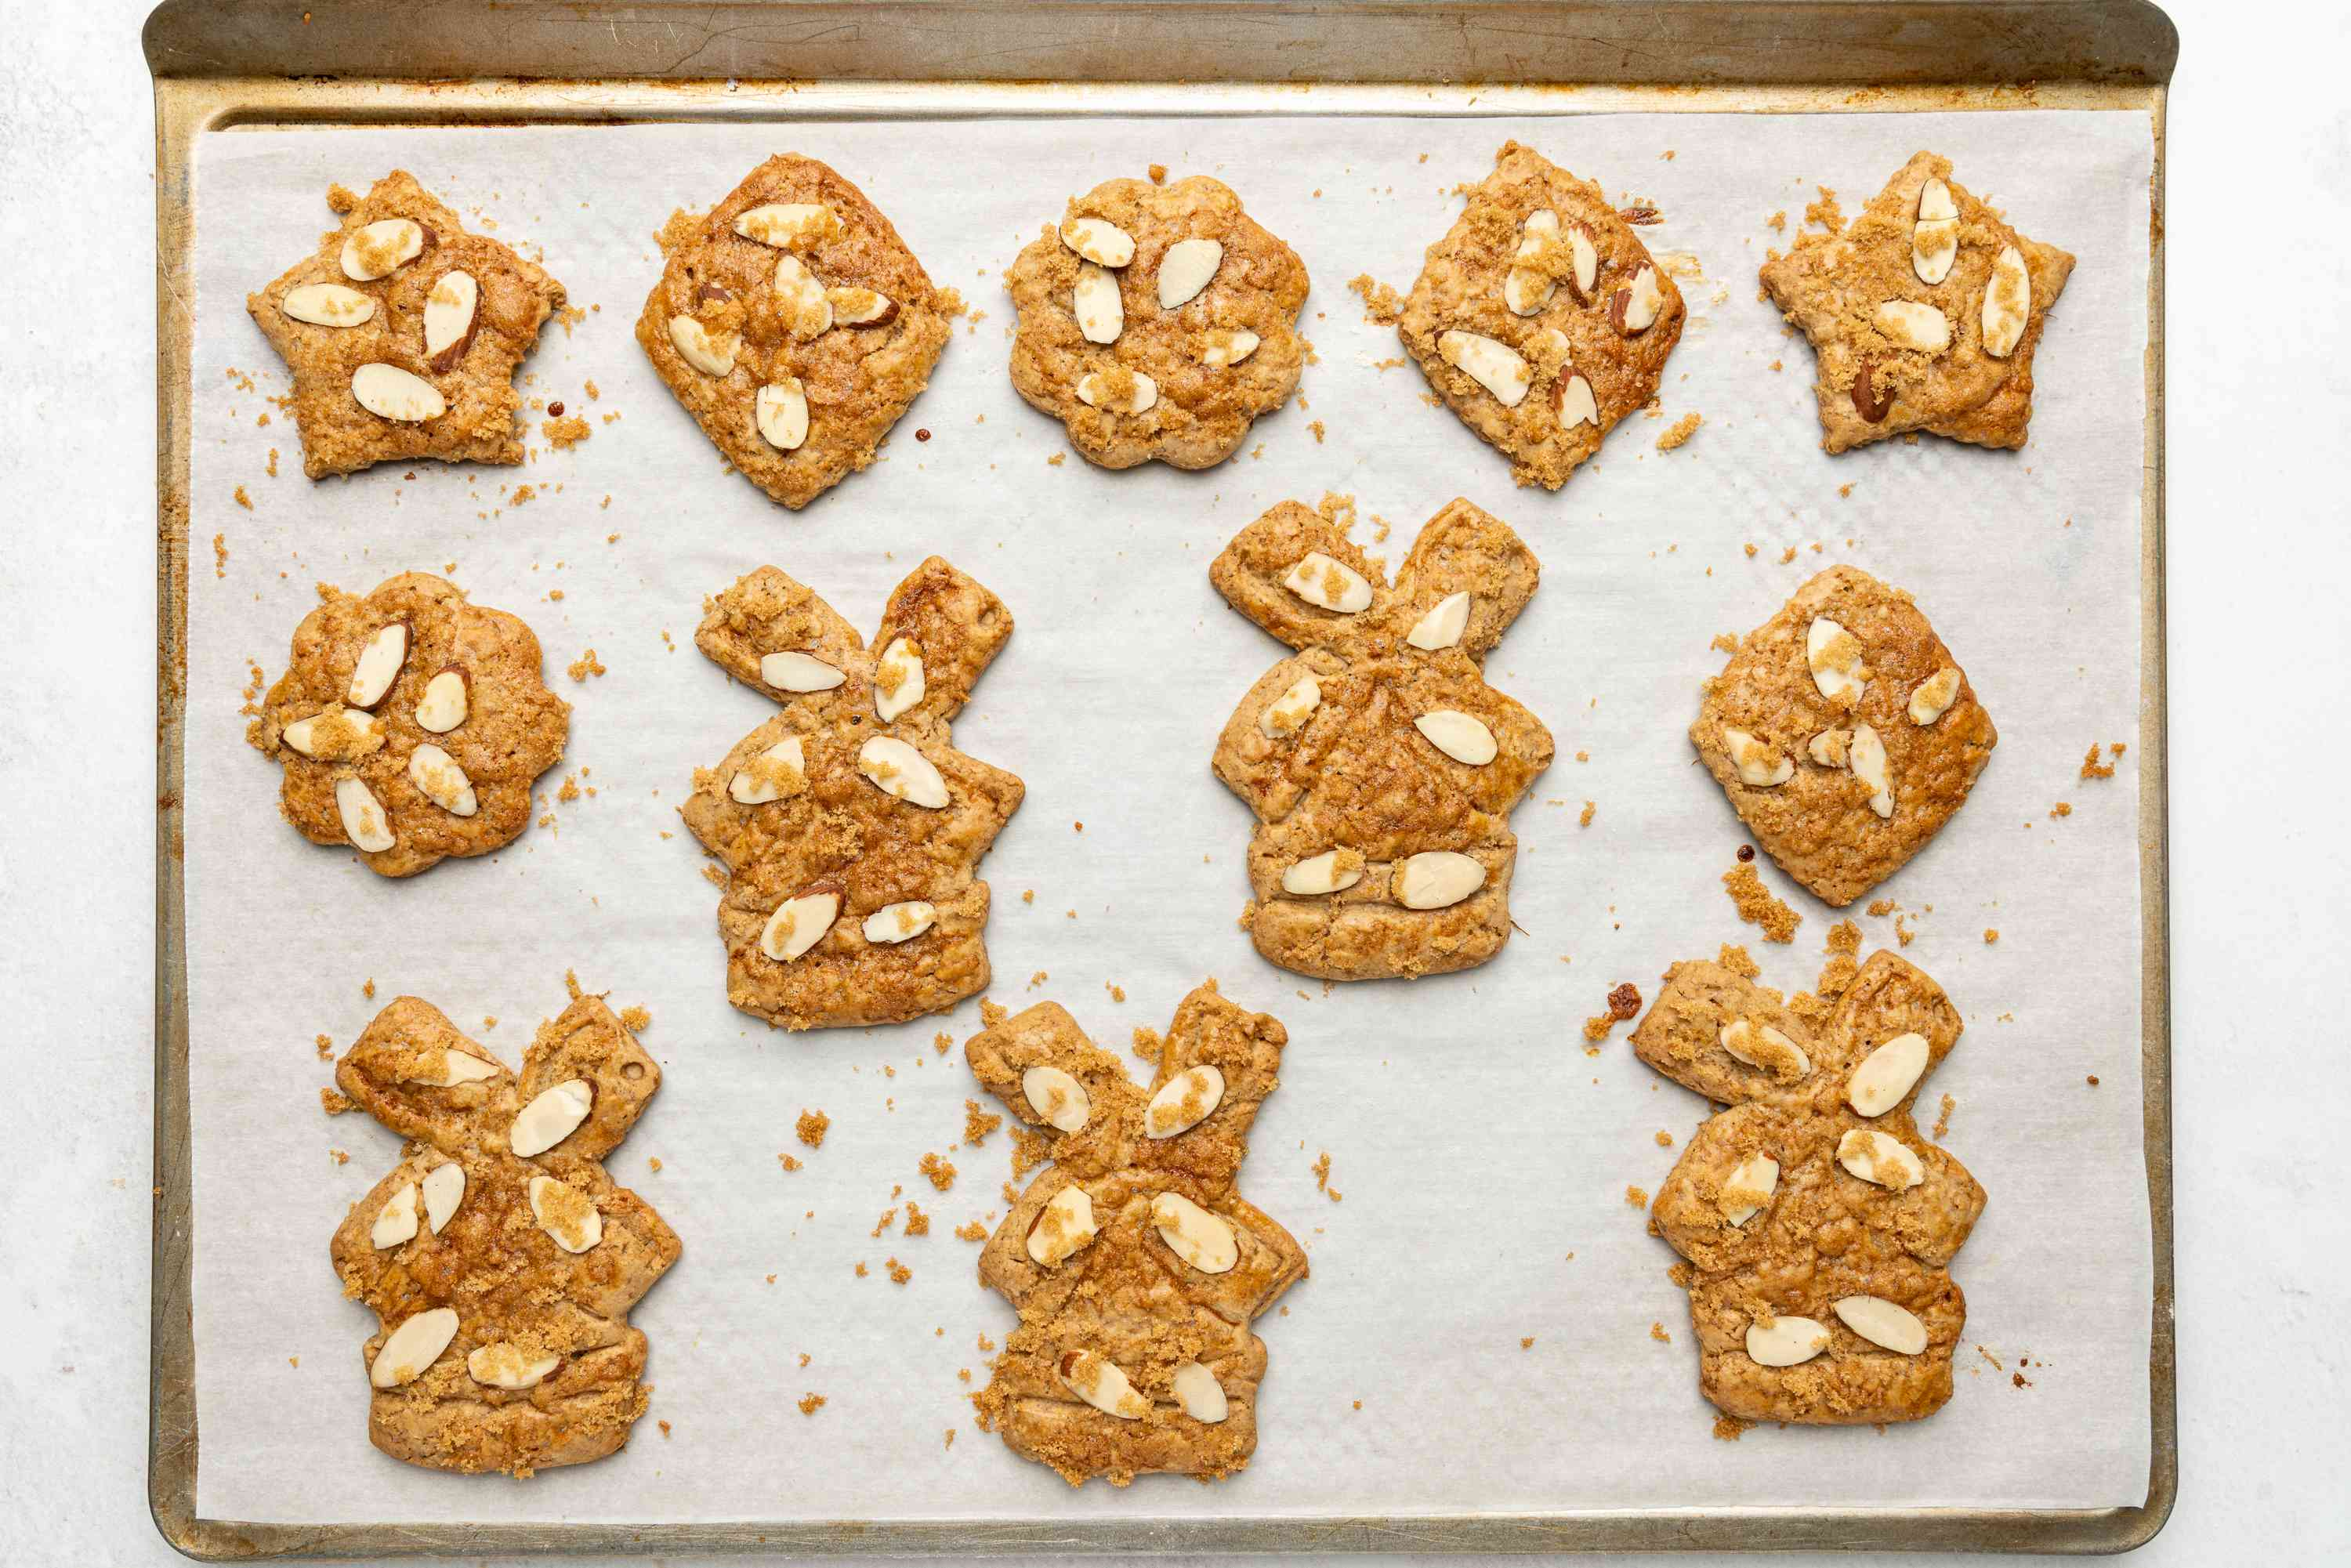 baked Dutch Speculaas (Windmill) Cookies on a baking sheet